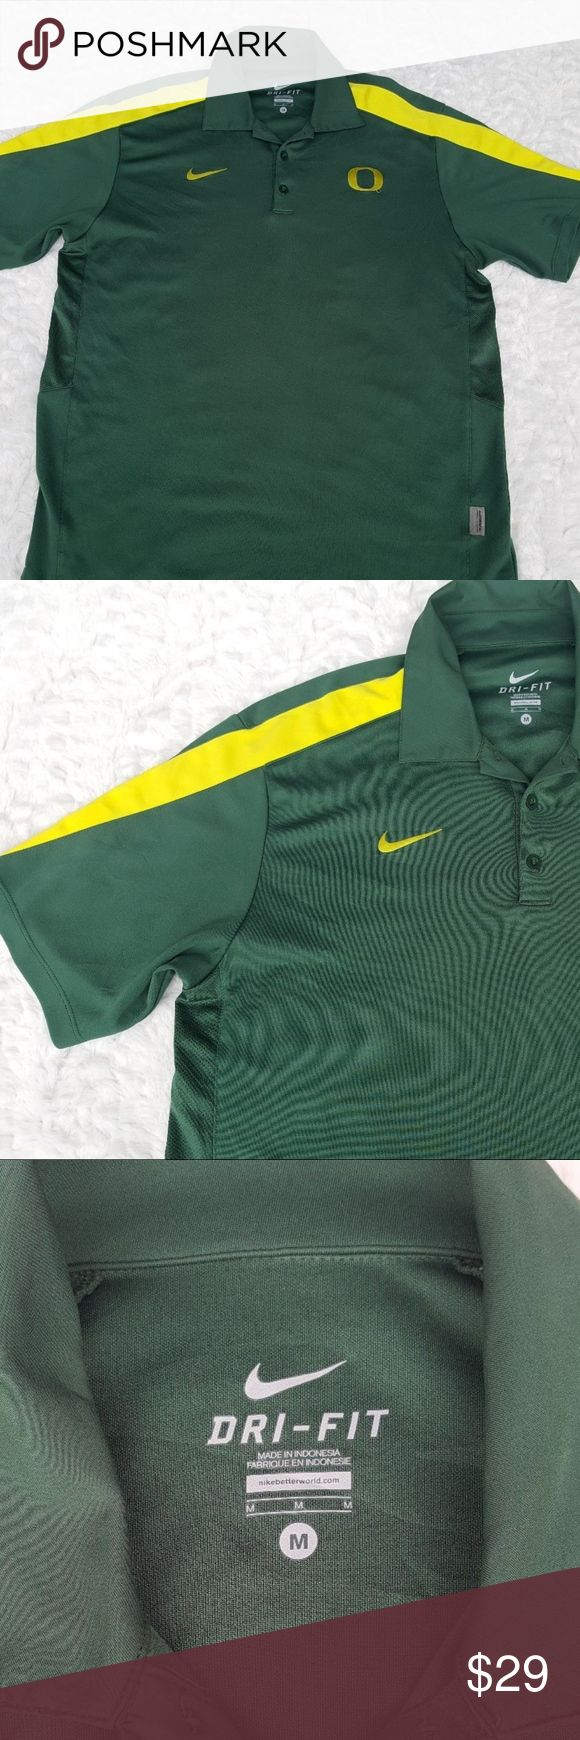 """Mens U of O Ducks Nike Drive Fit Medium Polo Shirt Mens Nike Dri Fit Medium University of Oregon Ducks Polo Shirt Green Yellow  Type: University Apparel Style: Polo Shirt Brand: Nike Dri Fit Material: 100% Polyester Color: Green, Yellow Measurements: Armpit to armpit 21"""", Shoulder to hem 27.5"""" Condition: used Country of Manufacture: Indonesia Nike Shirts Polos"""